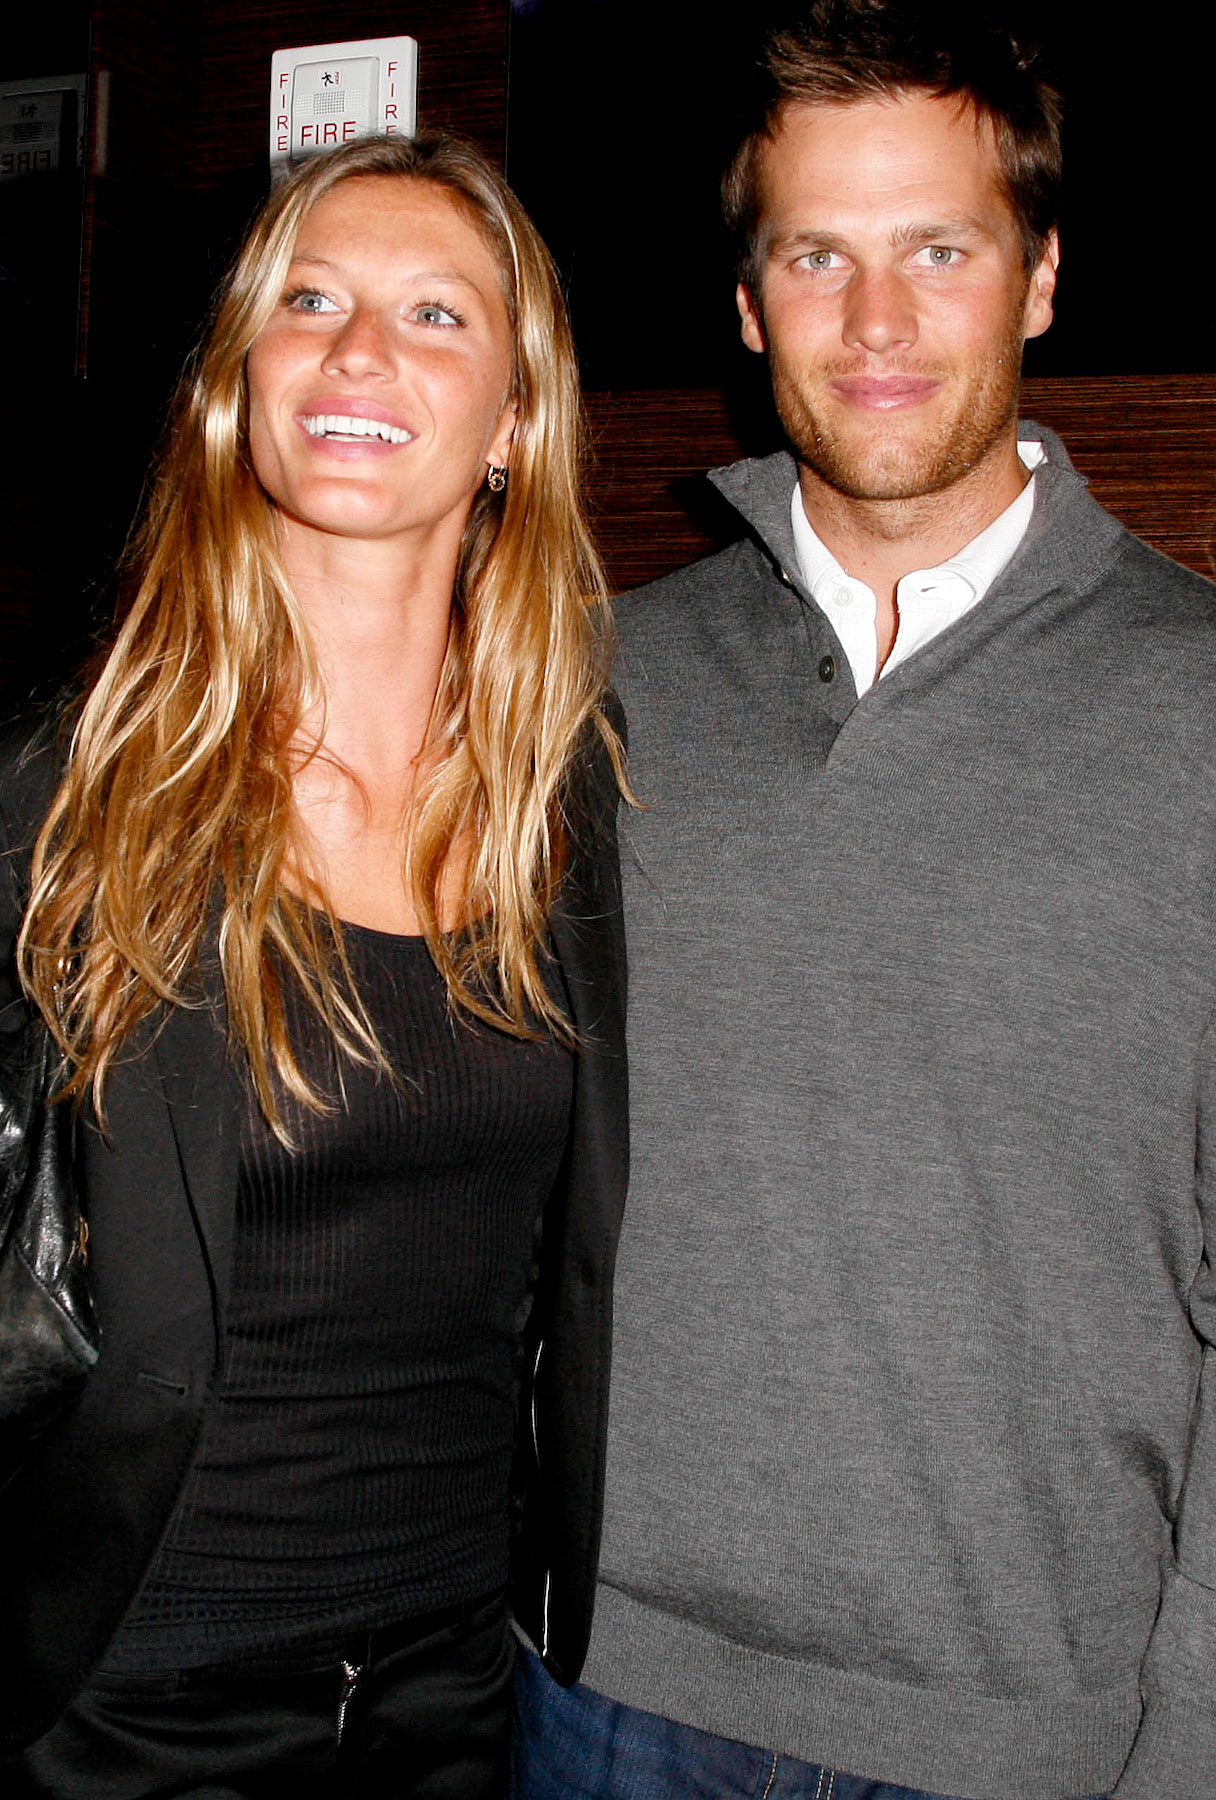 Tom Brady and Gisele Bundchen Prepare for Wedding Number Two